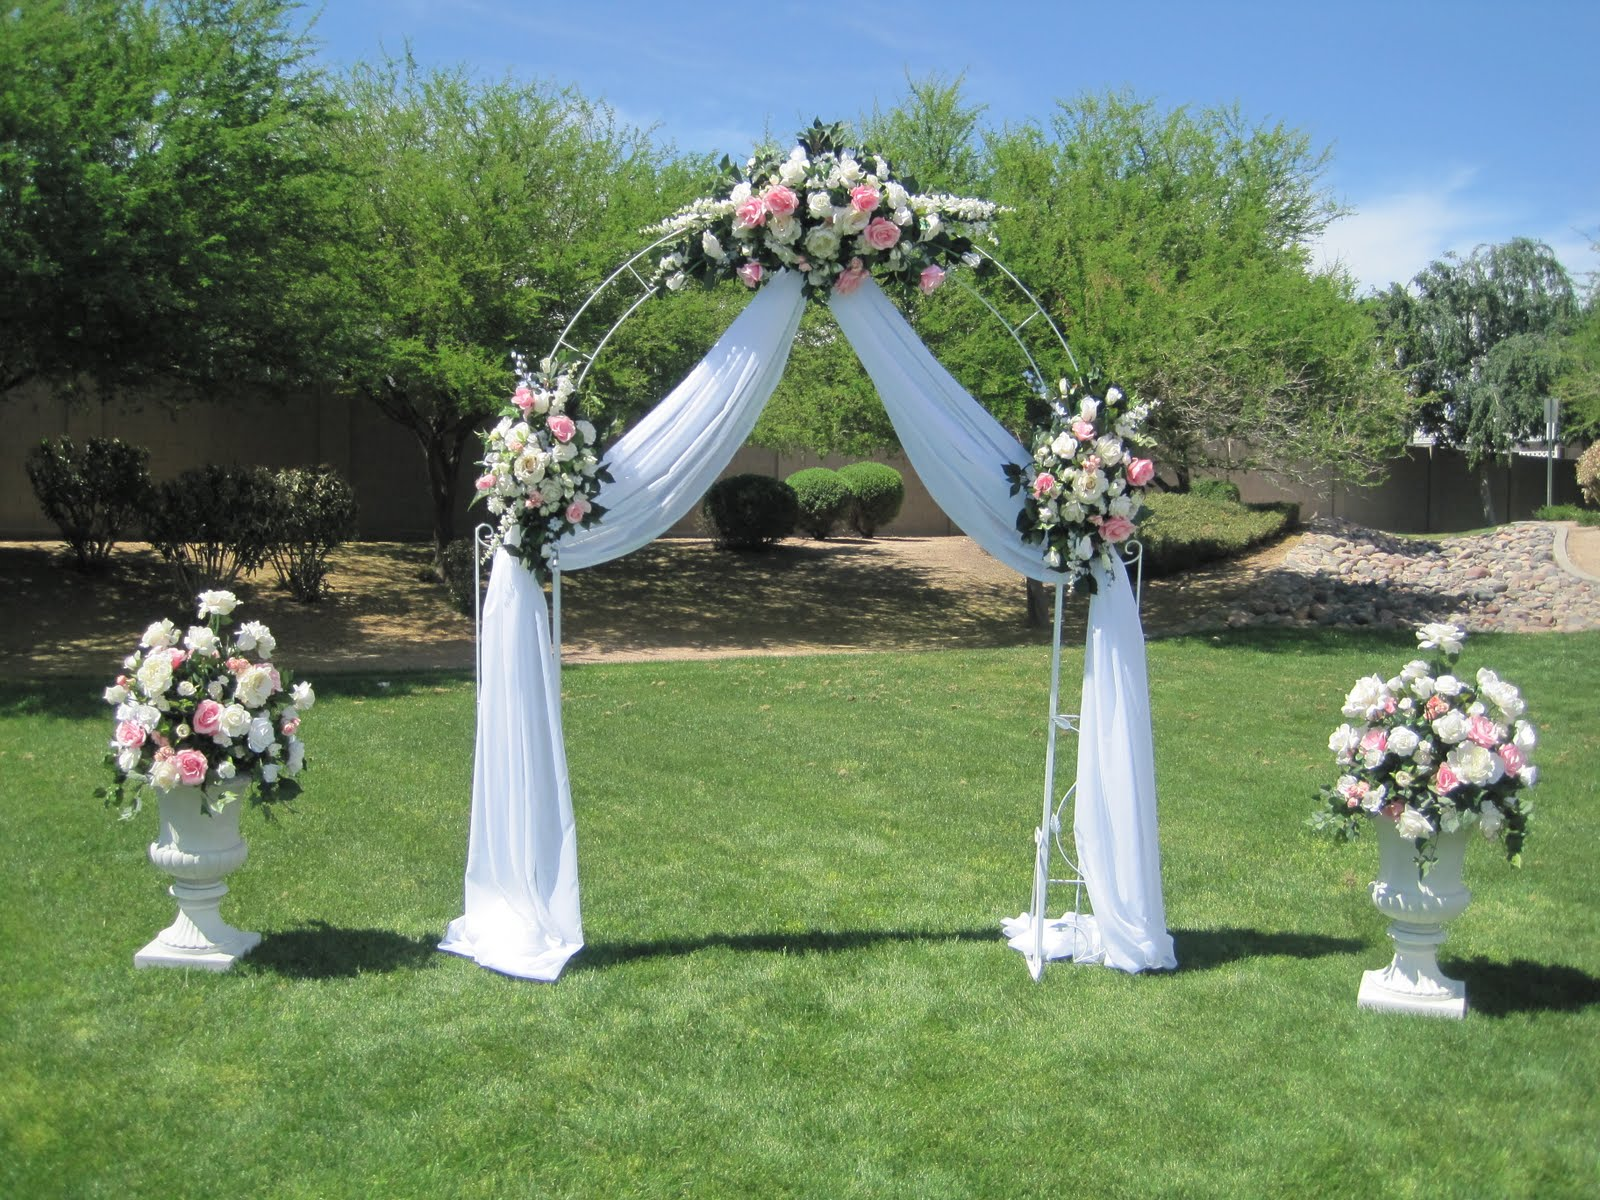 forevermore wedding decor arches